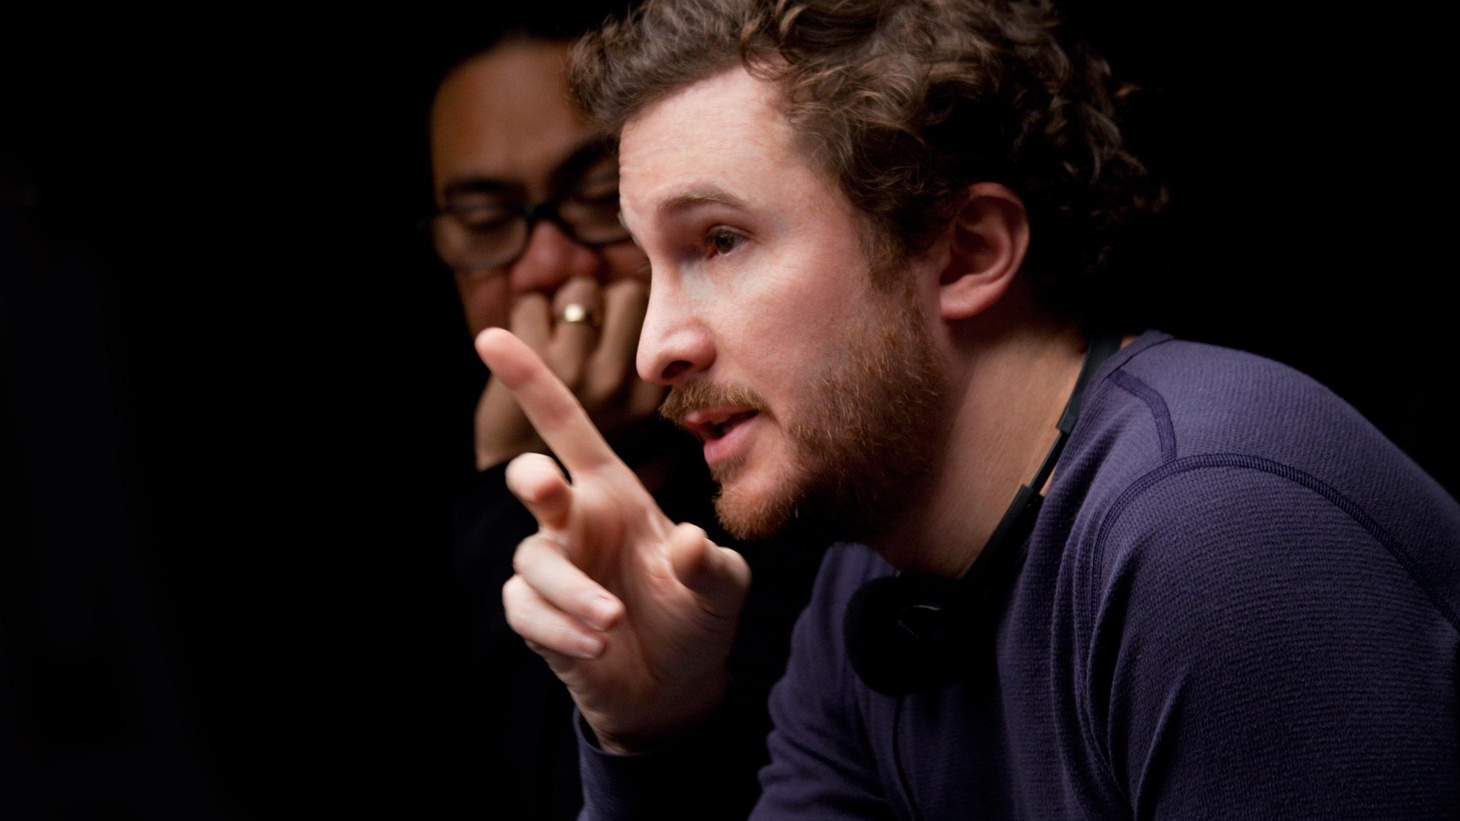 How Darren Aronofsky made the biblical epic he wanted to make despite push-back from the studio and test audiences.